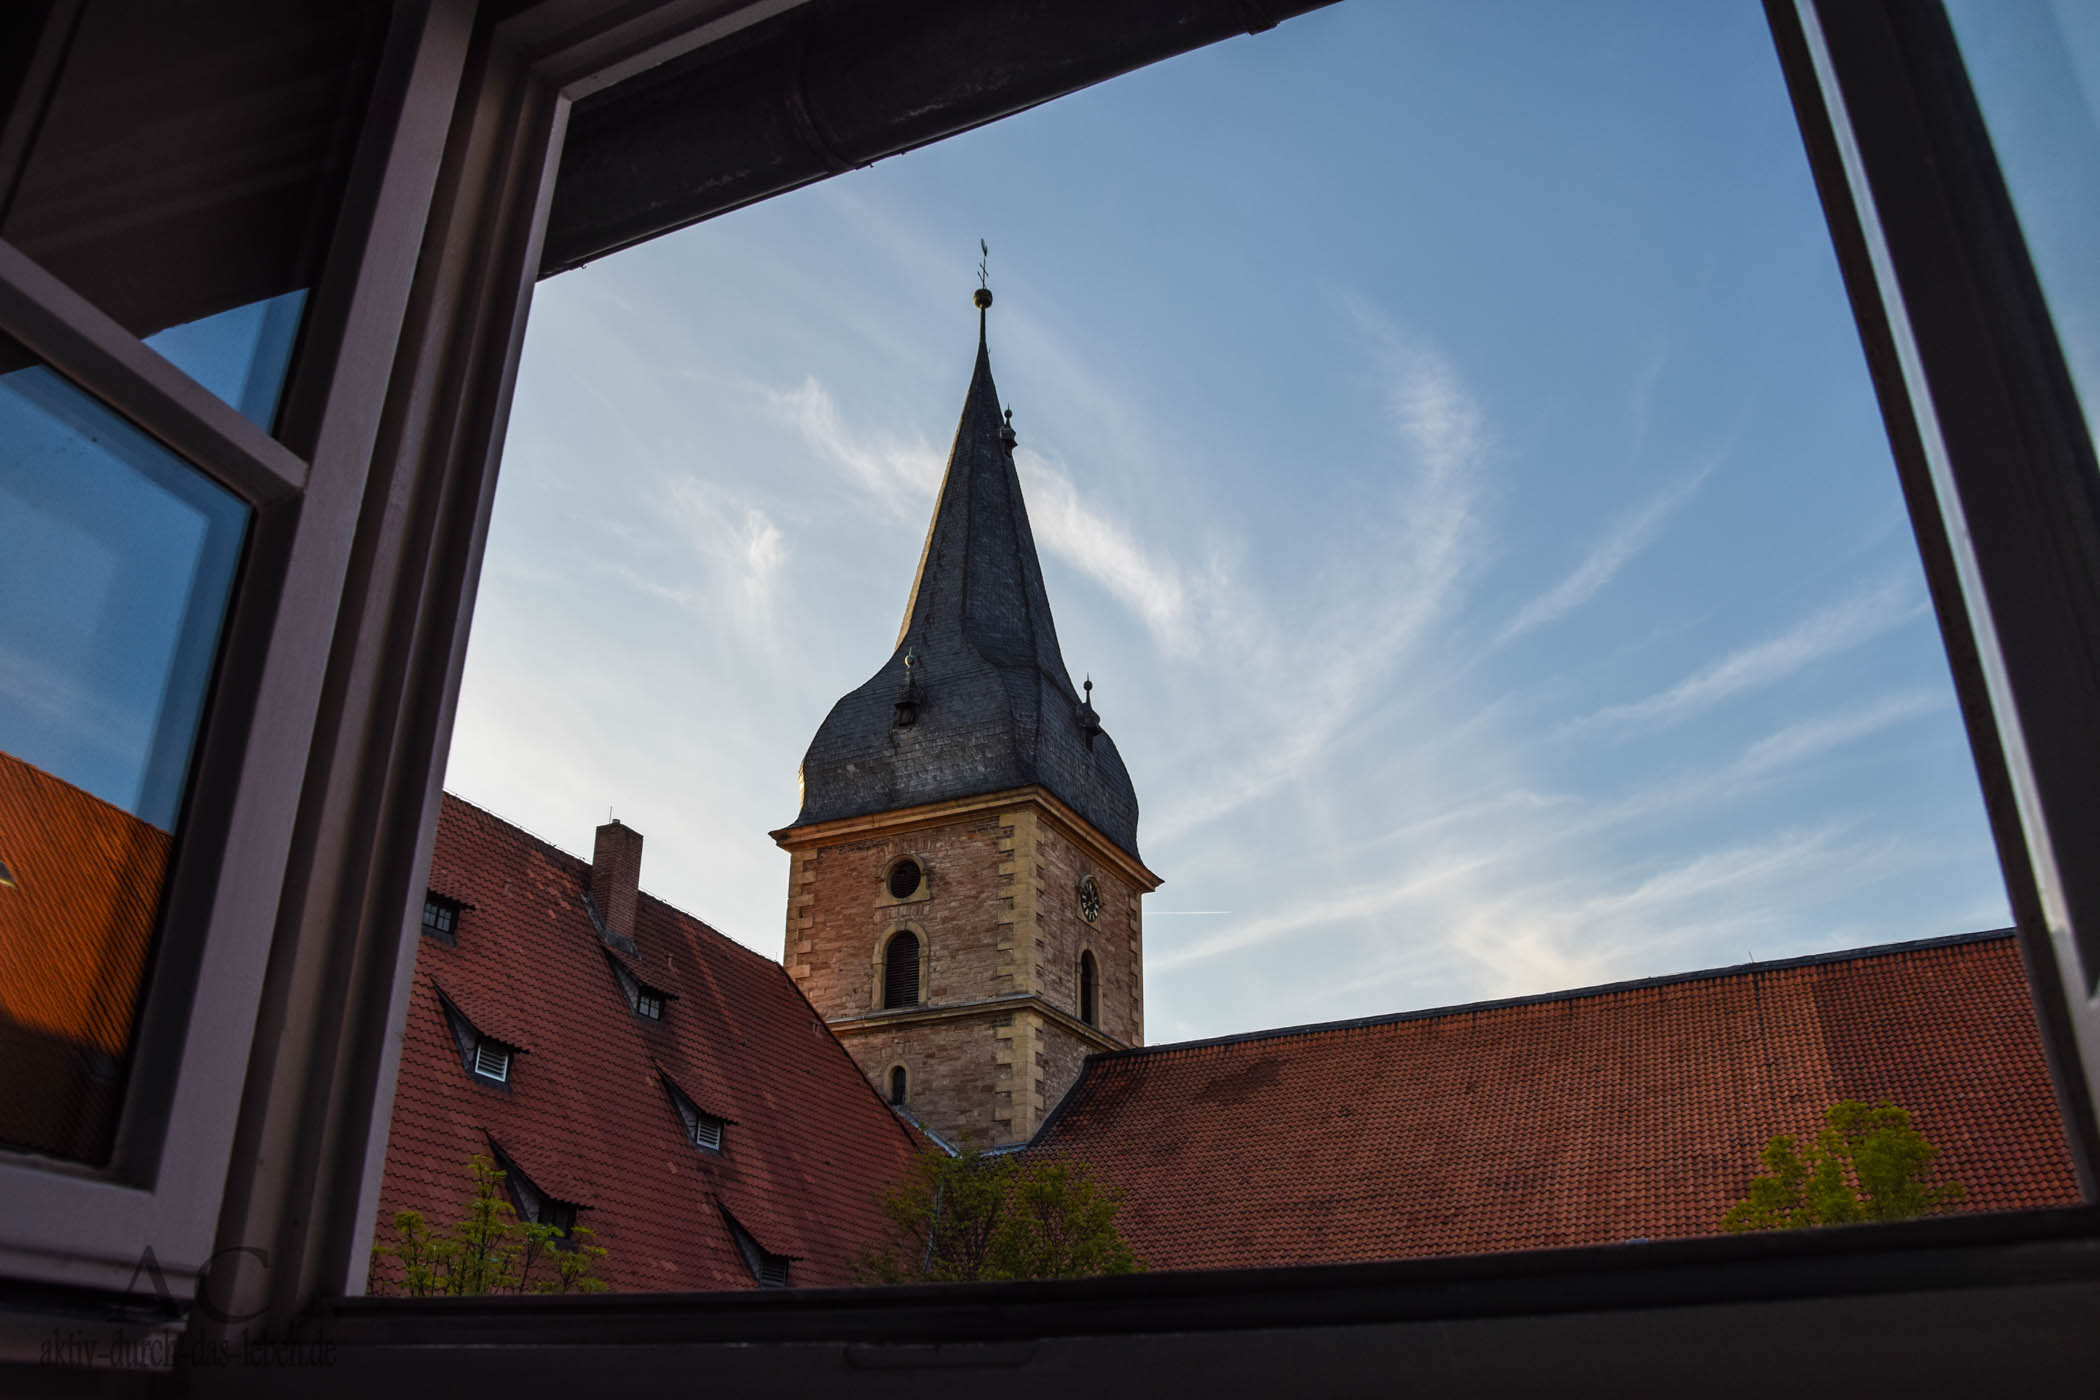 kloster w ltingerode blick aus dem fenster aktiv durch das. Black Bedroom Furniture Sets. Home Design Ideas